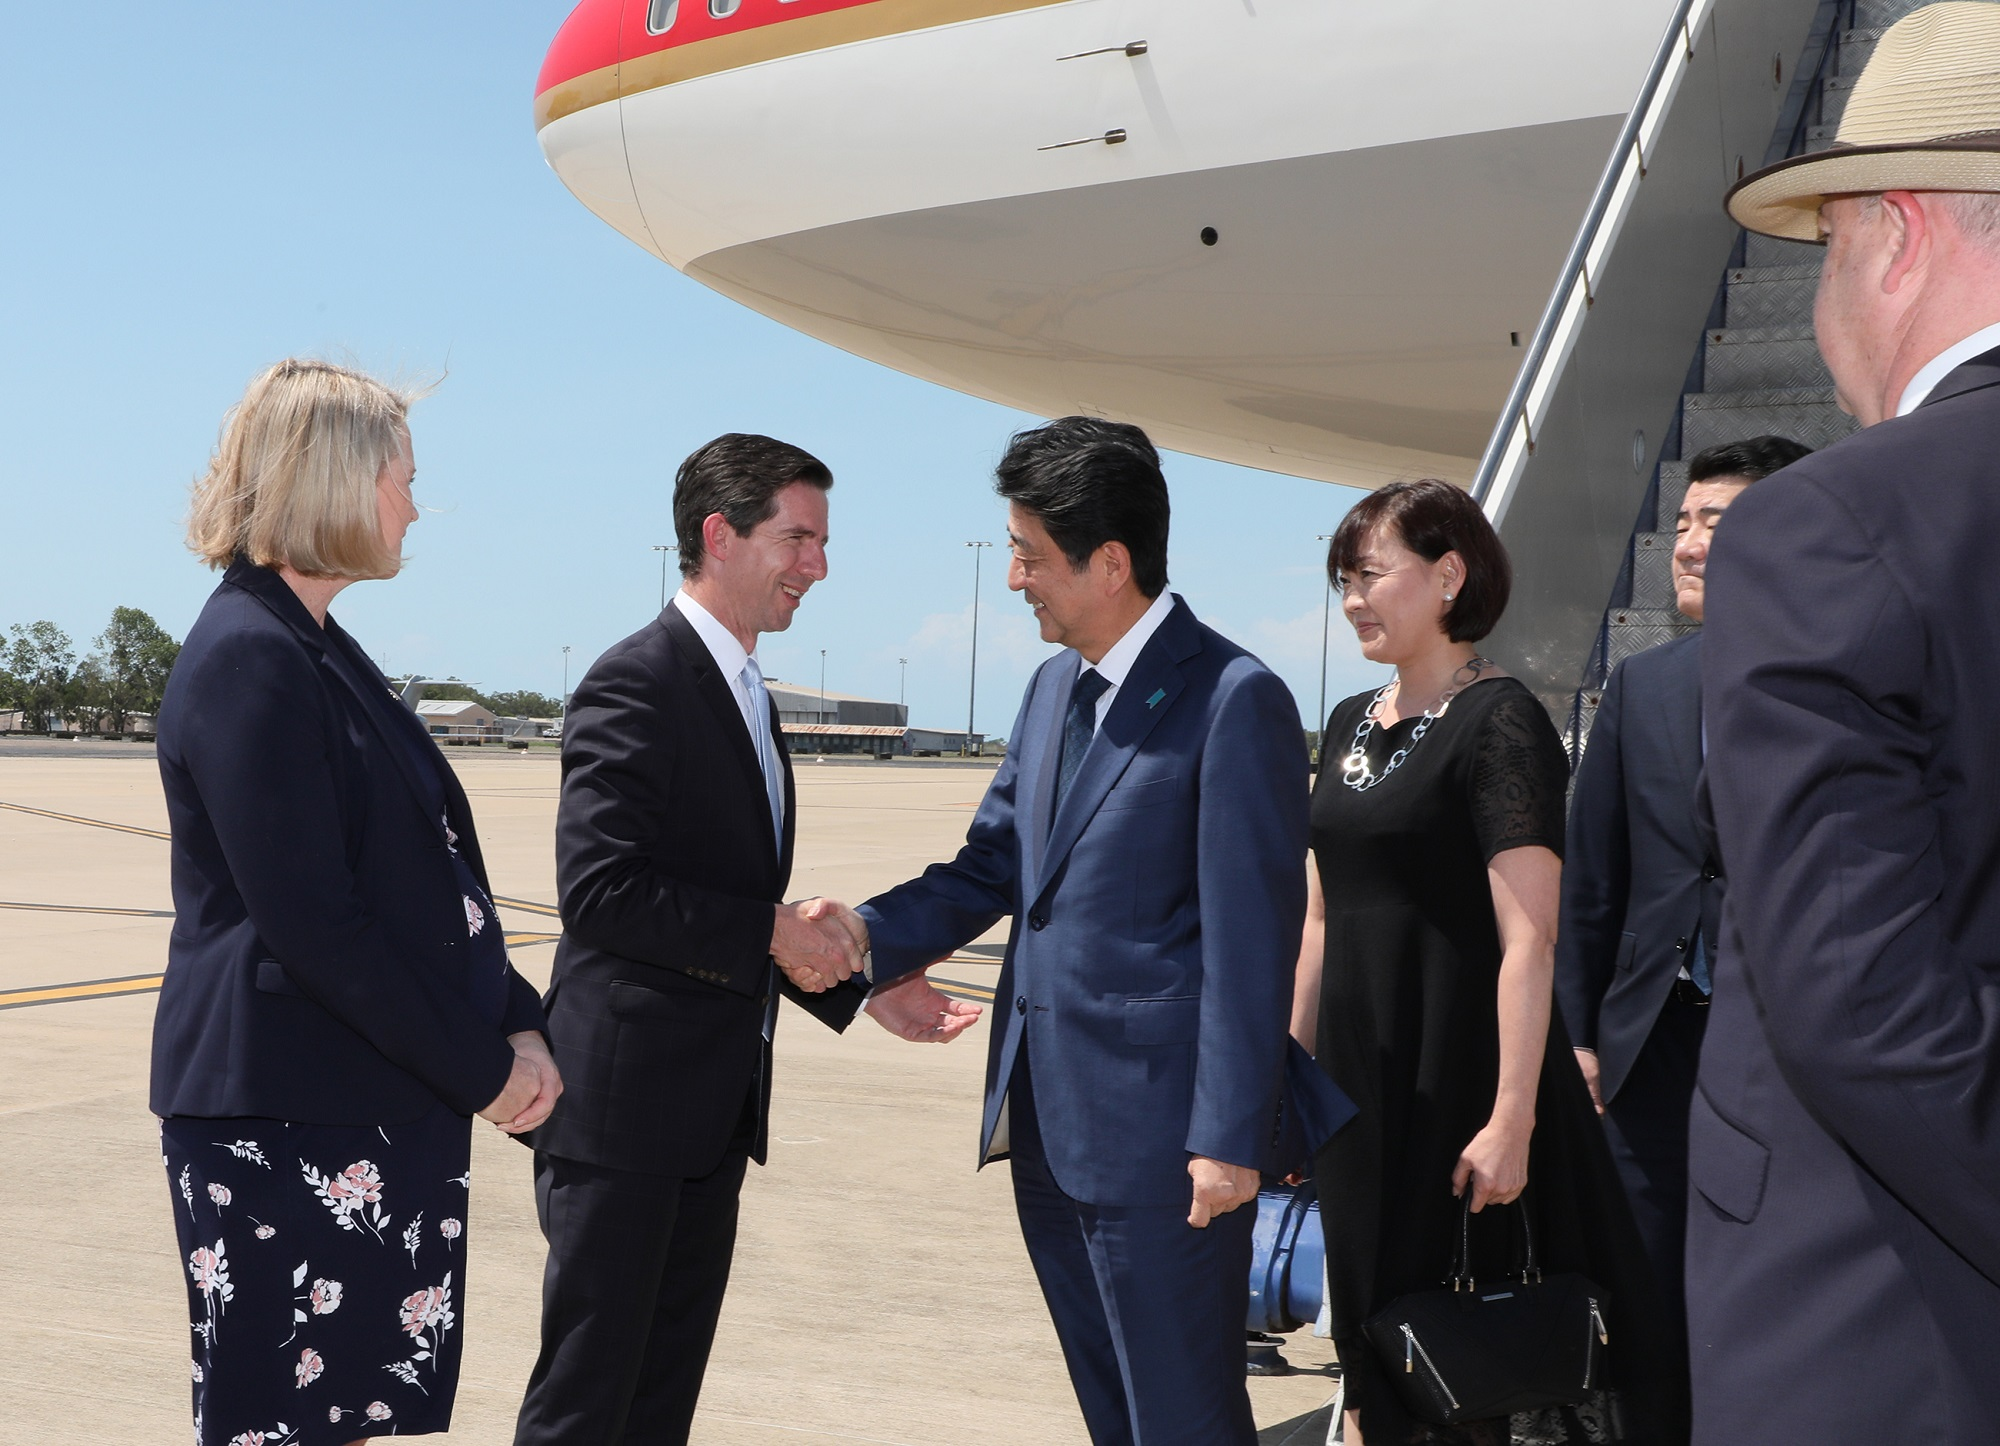 Photograph of the Prime Minister visiting Australia